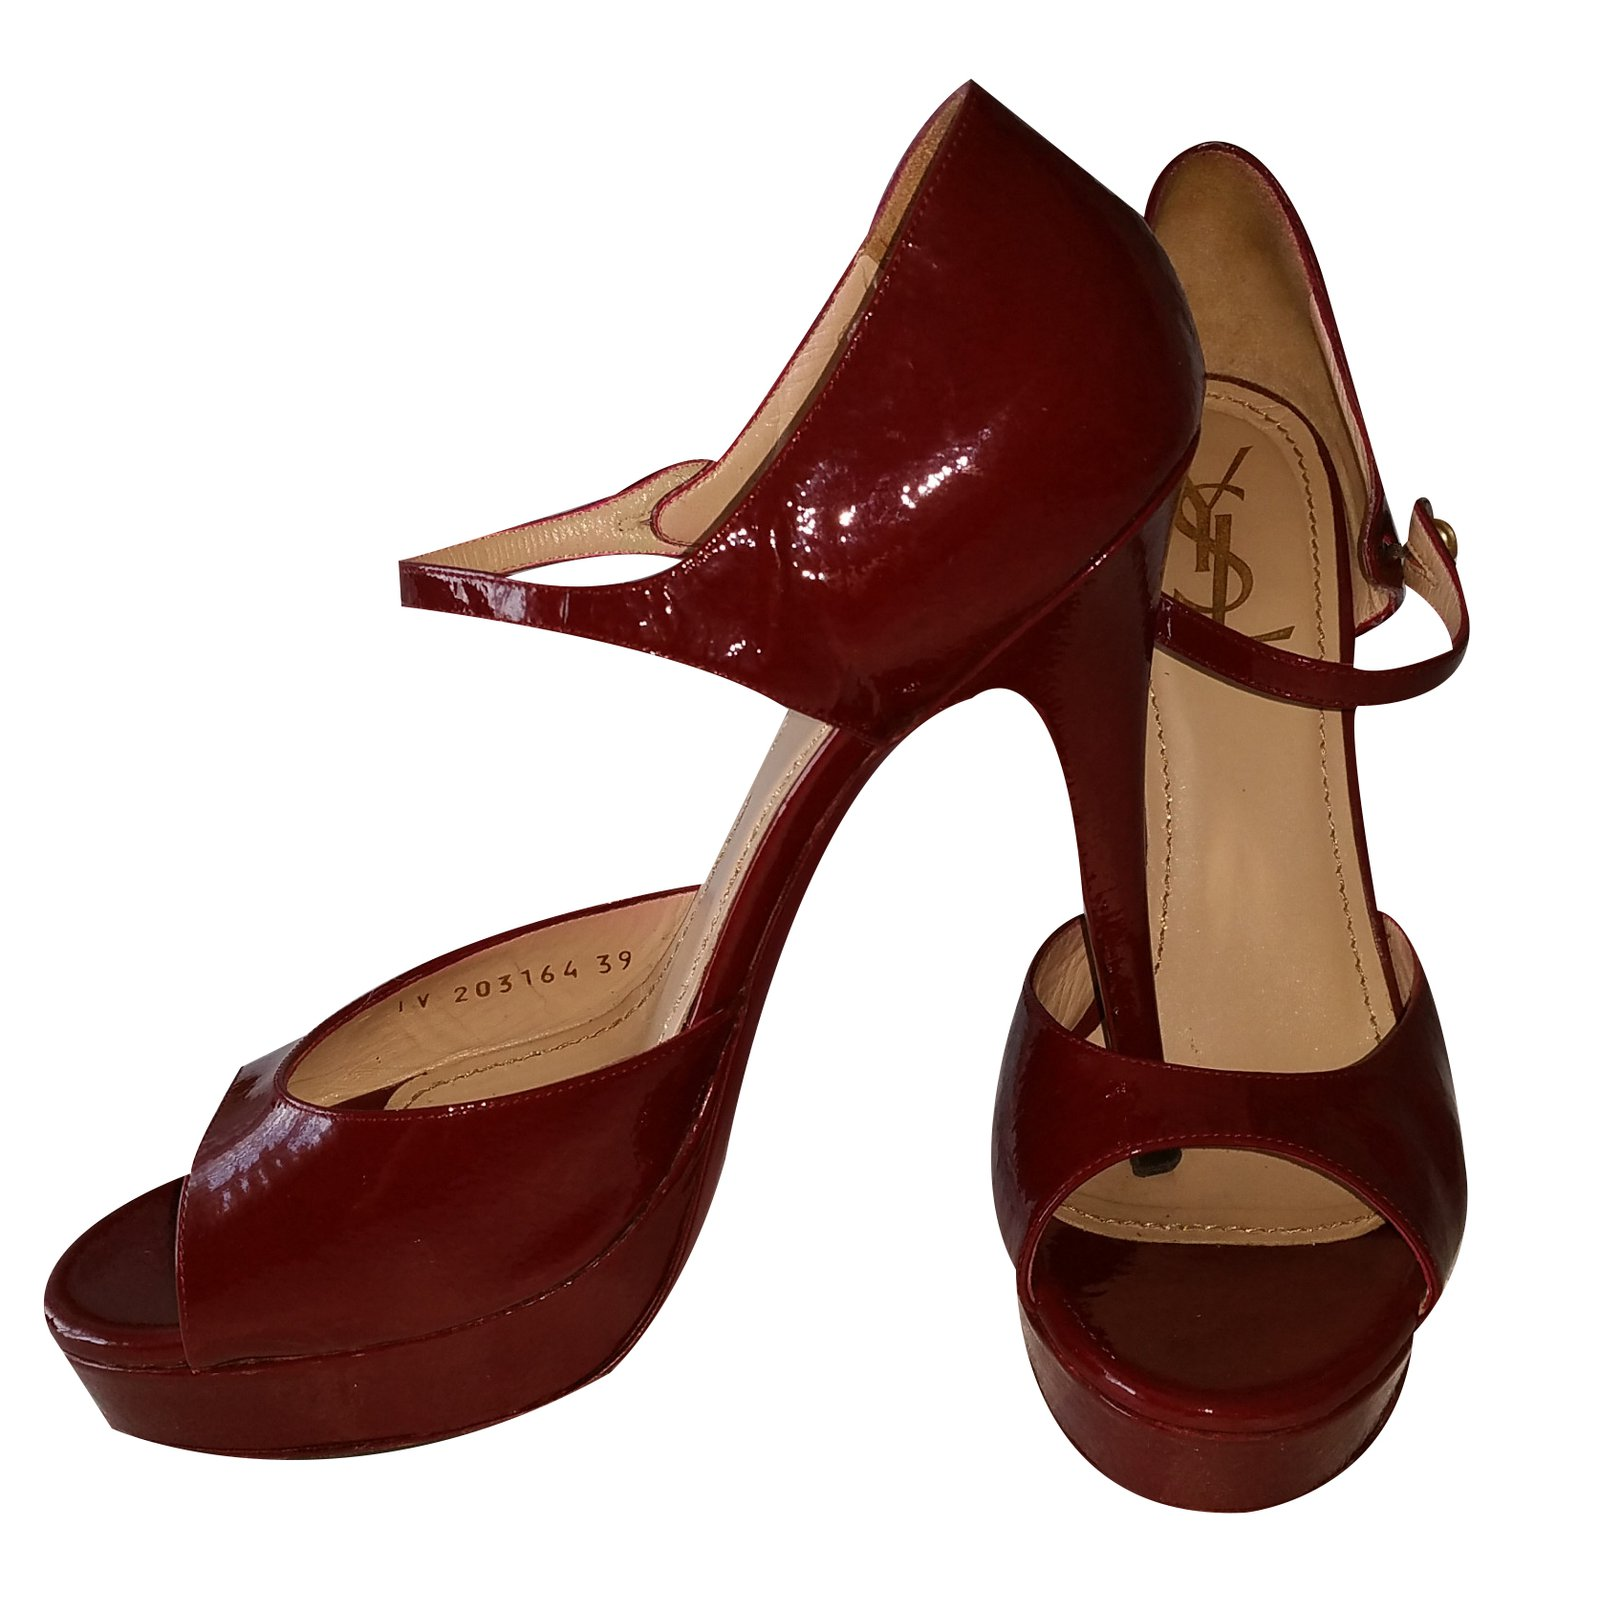 5eb257a5528cd Facebook · Pin This. Yves Saint Laurent Heels Heels Patent leather Dark red  ref.20112